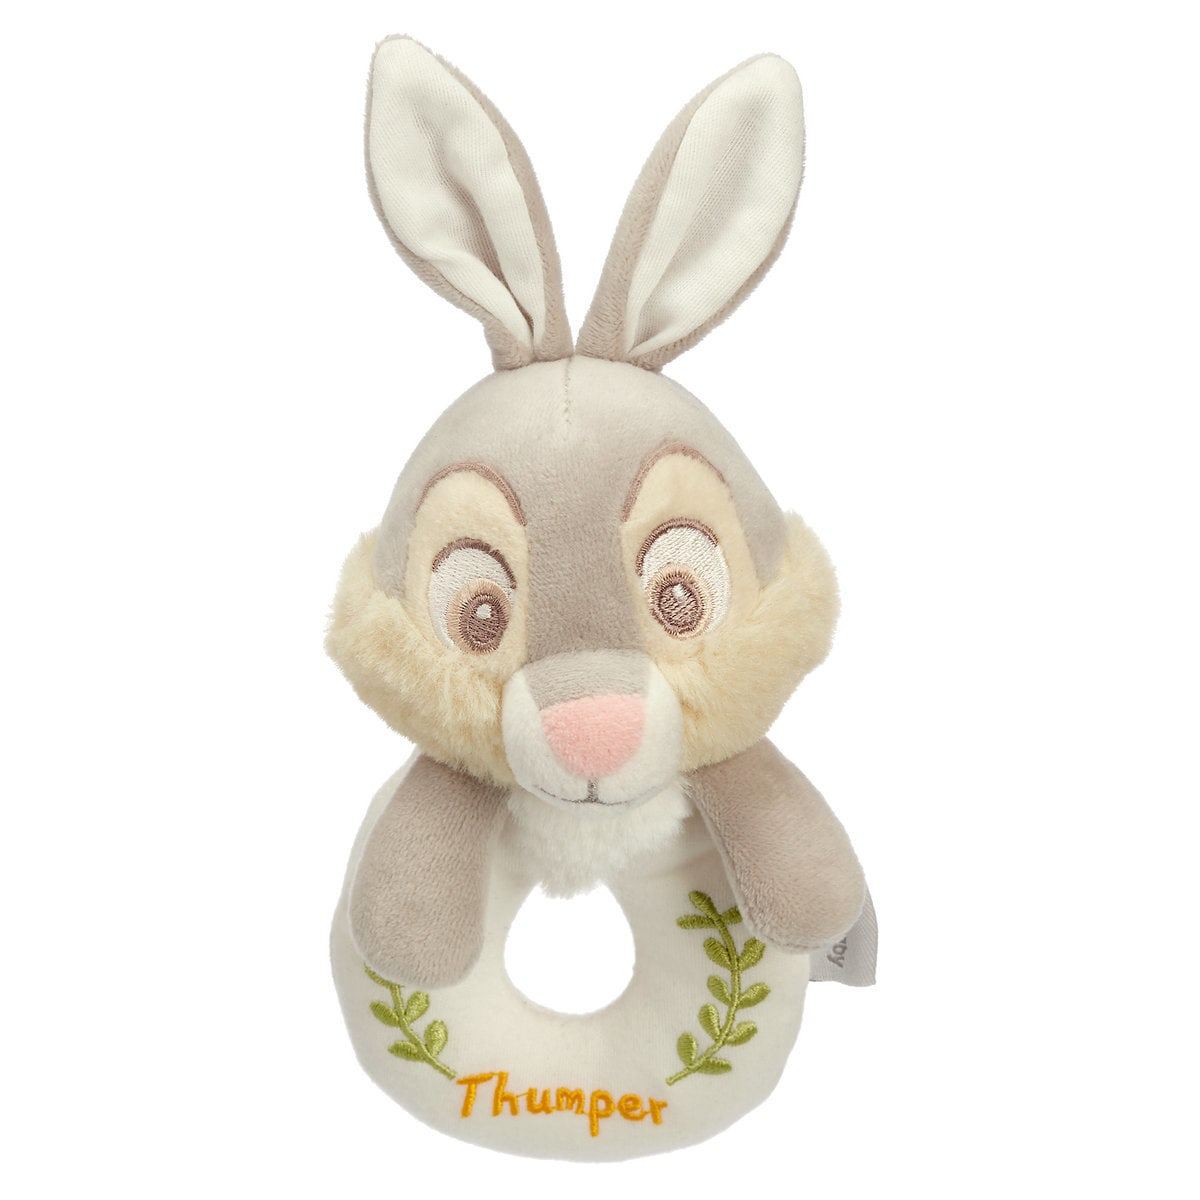 Uncategorized Pictures Of Thumper thumper plush rattle for baby shopdisney baby